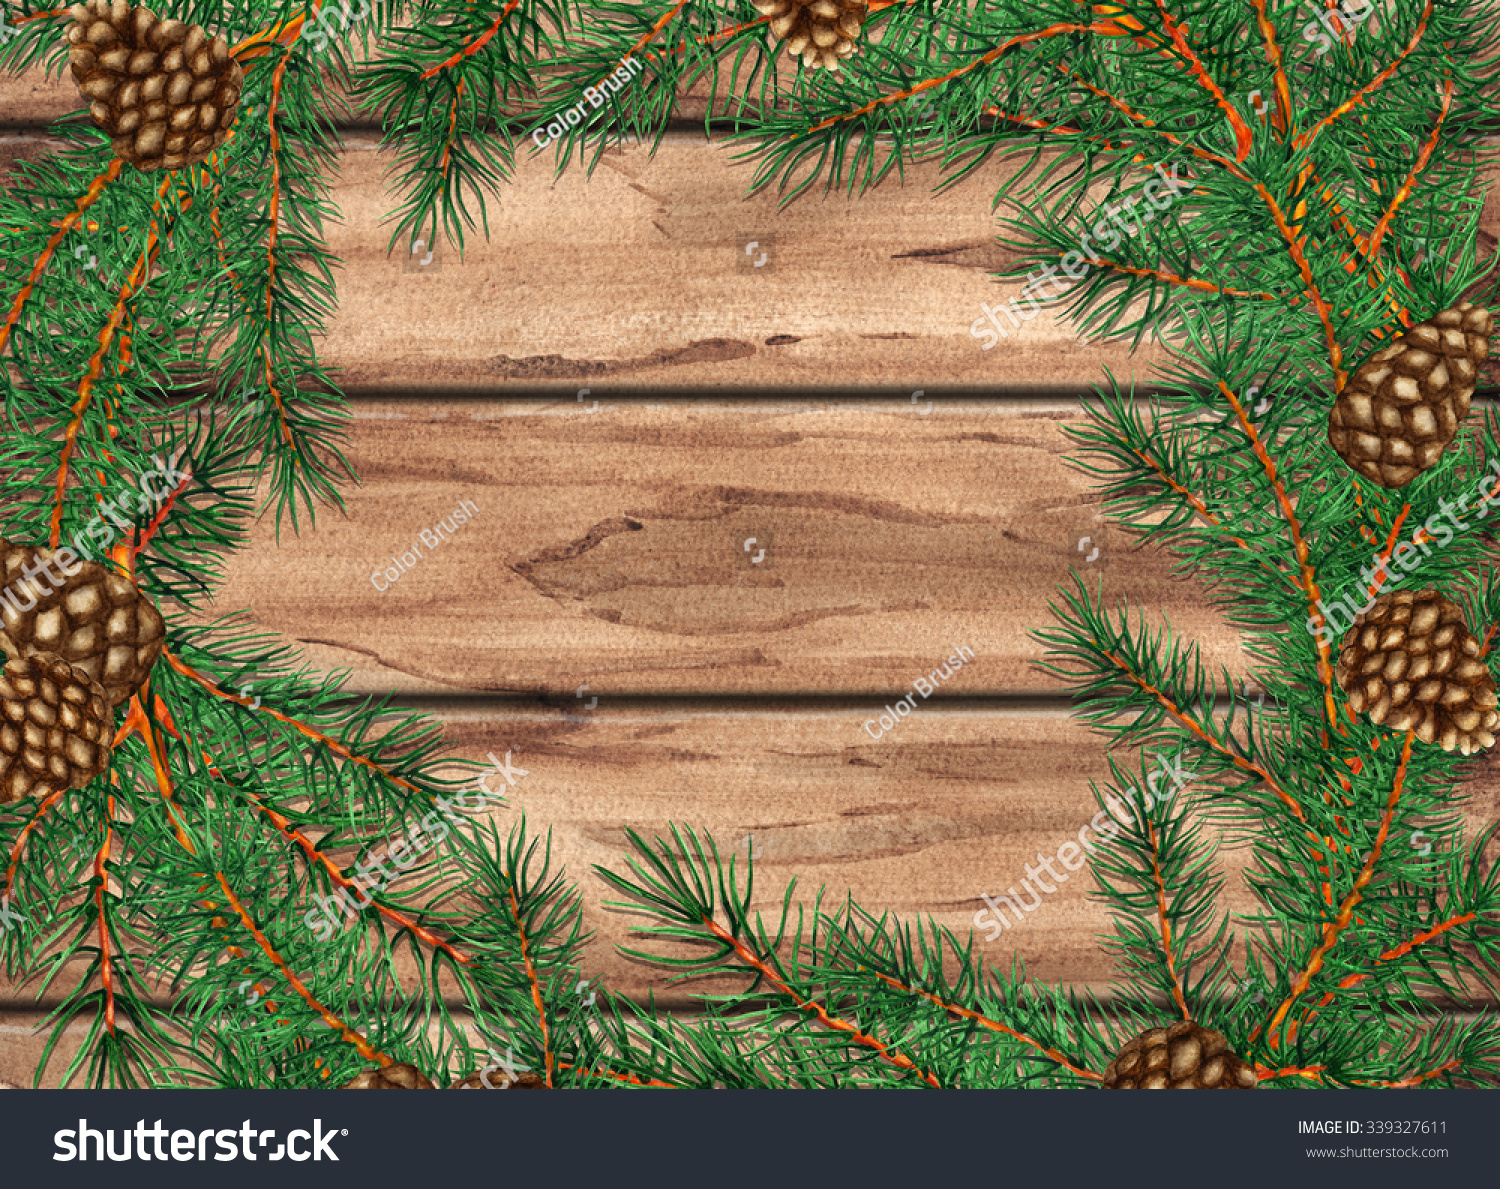 Pine Branches For Decoration Watercolor Wooden Background Pine Tree Branches With Cones